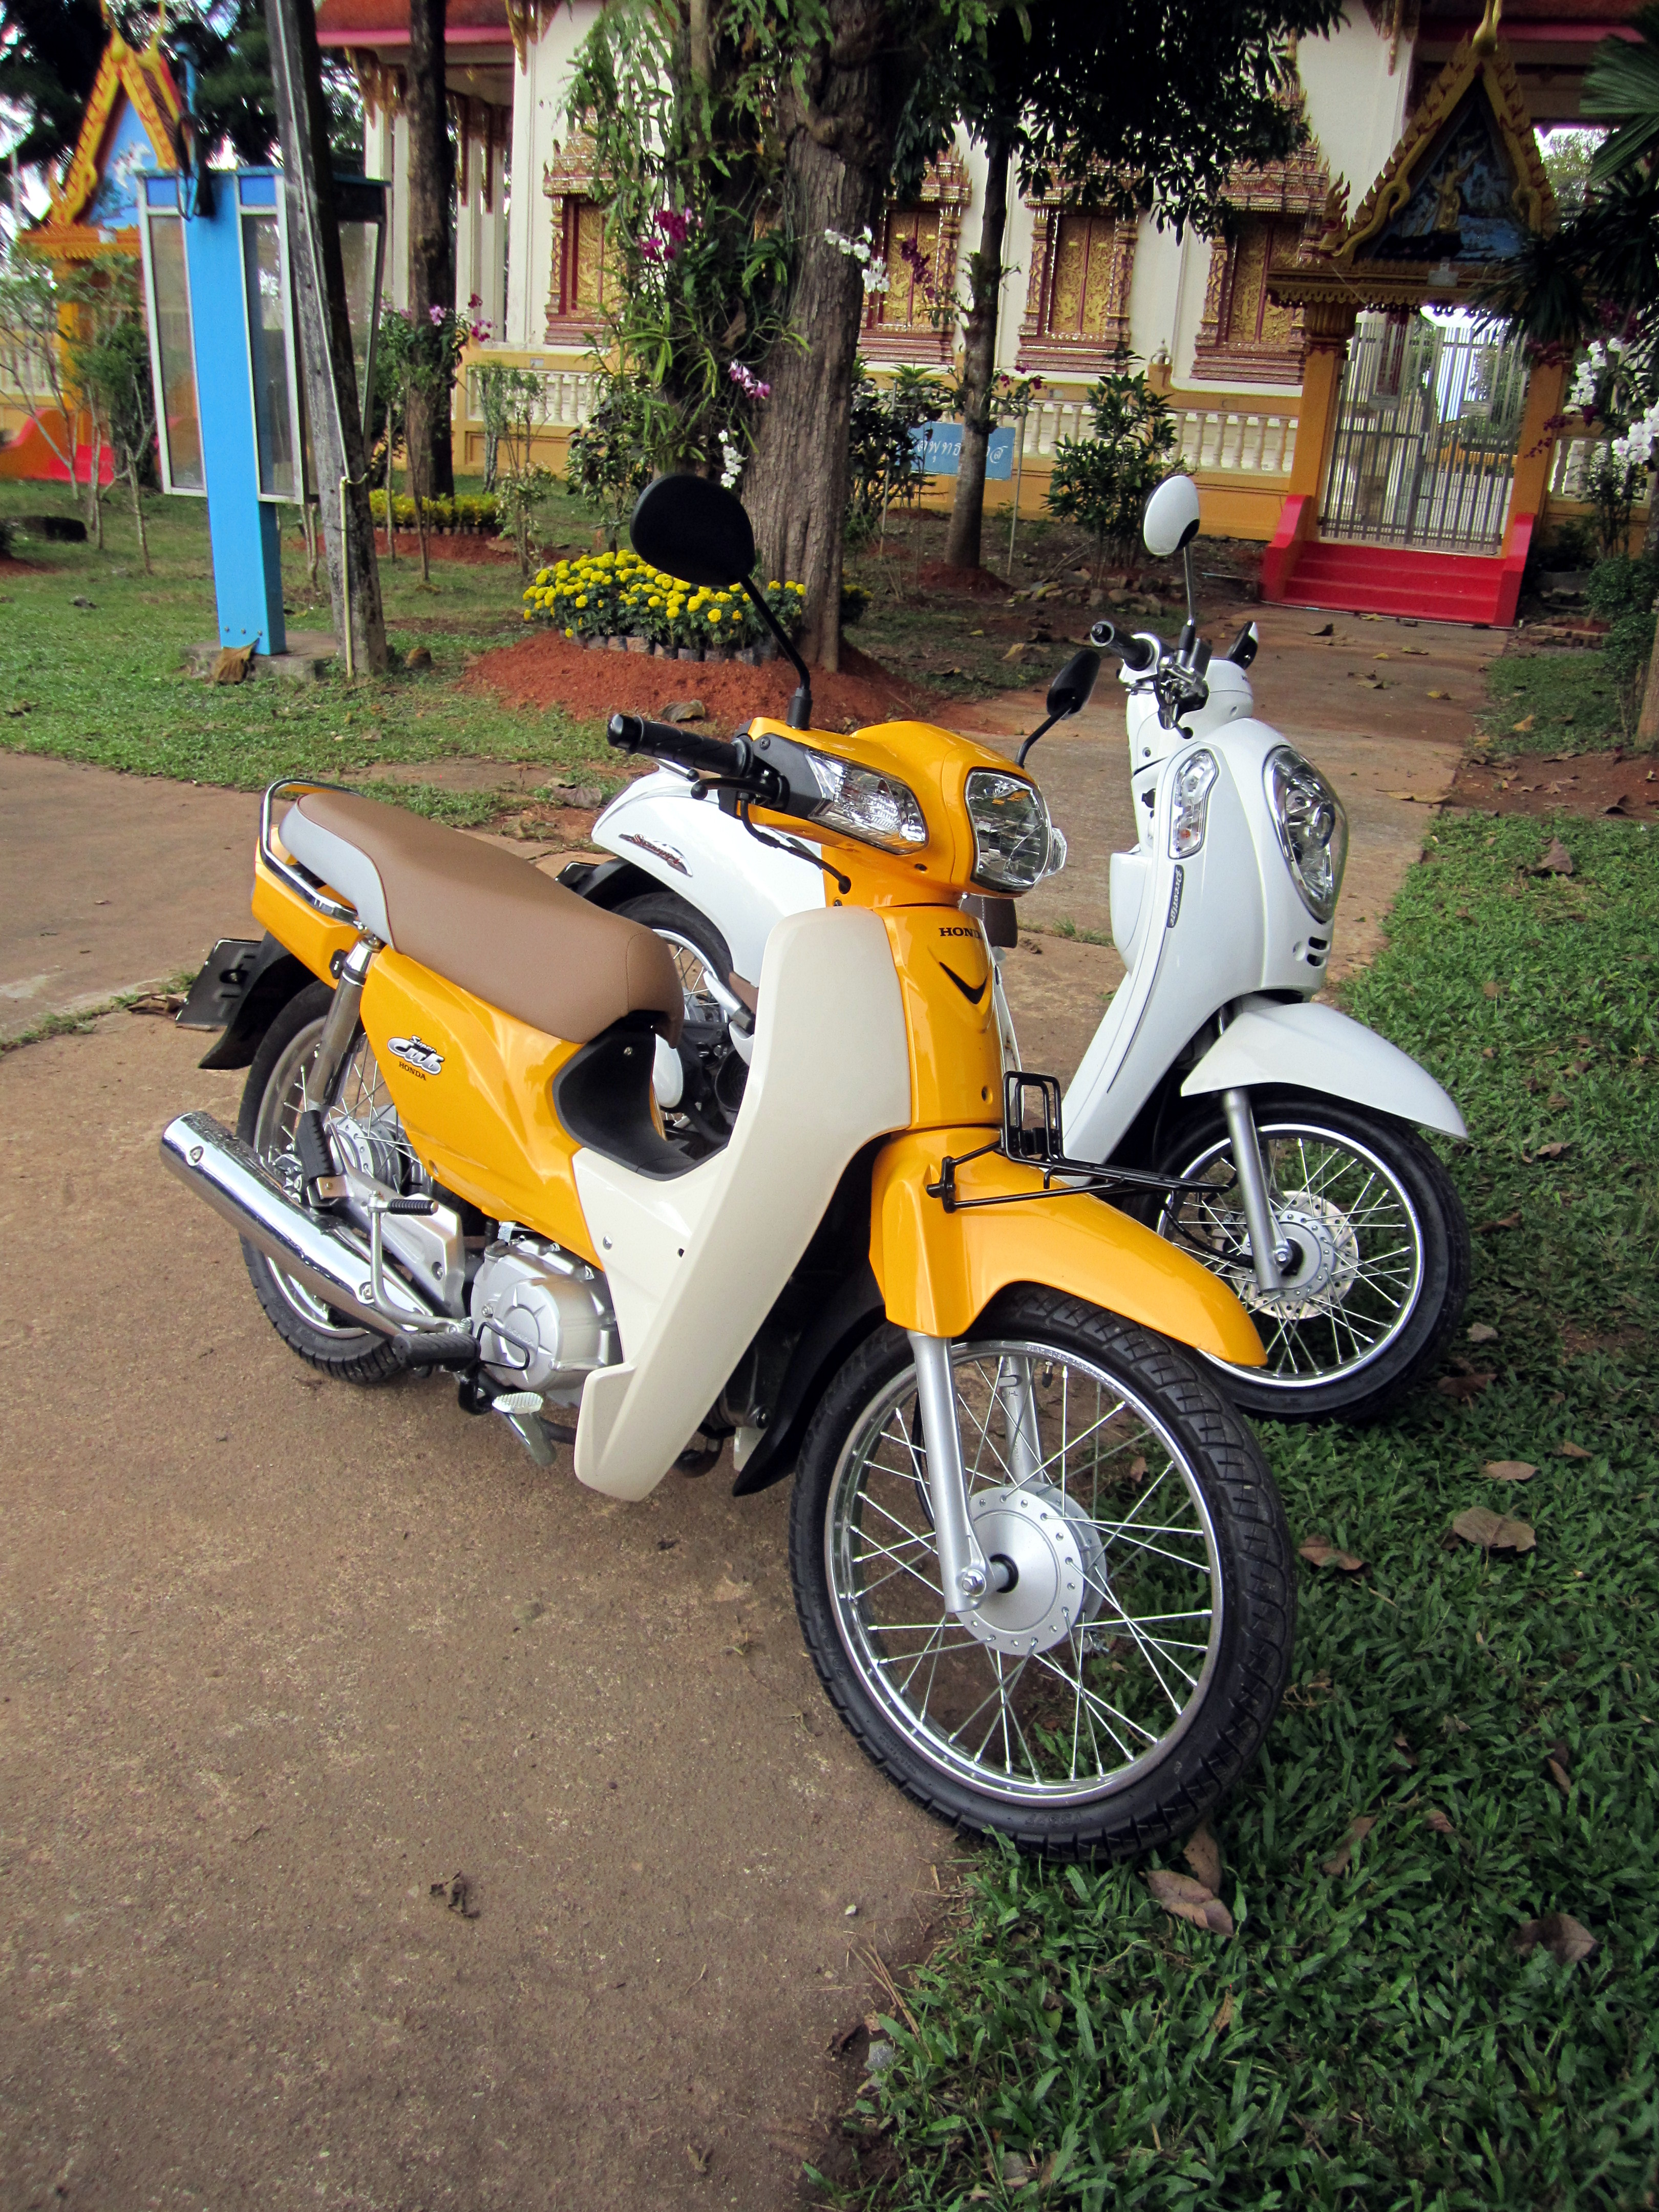 File Honda Dream 110i Super Cub Nd110m 2014 With A Honda Scoopy Jpg Wikimedia Commons